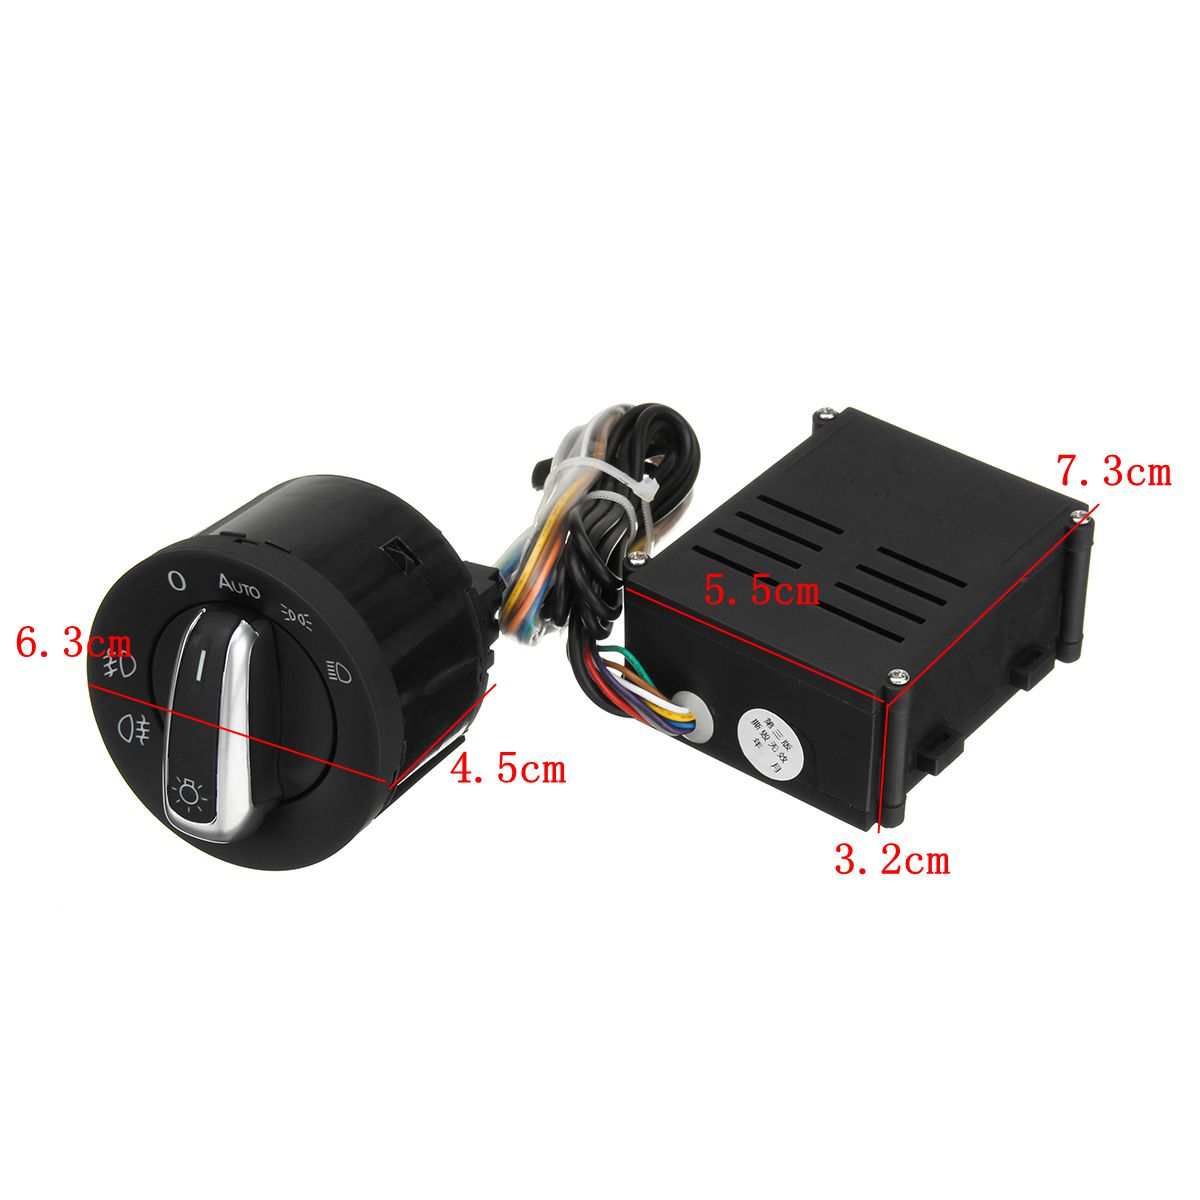 Image 5 - Car Auto Headlight Sensor HeadLamp Knob Switch Control Module for VW T5 T5.1 Transporter 2003 2015-in Car Switches & Relays from Automobiles & Motorcycles